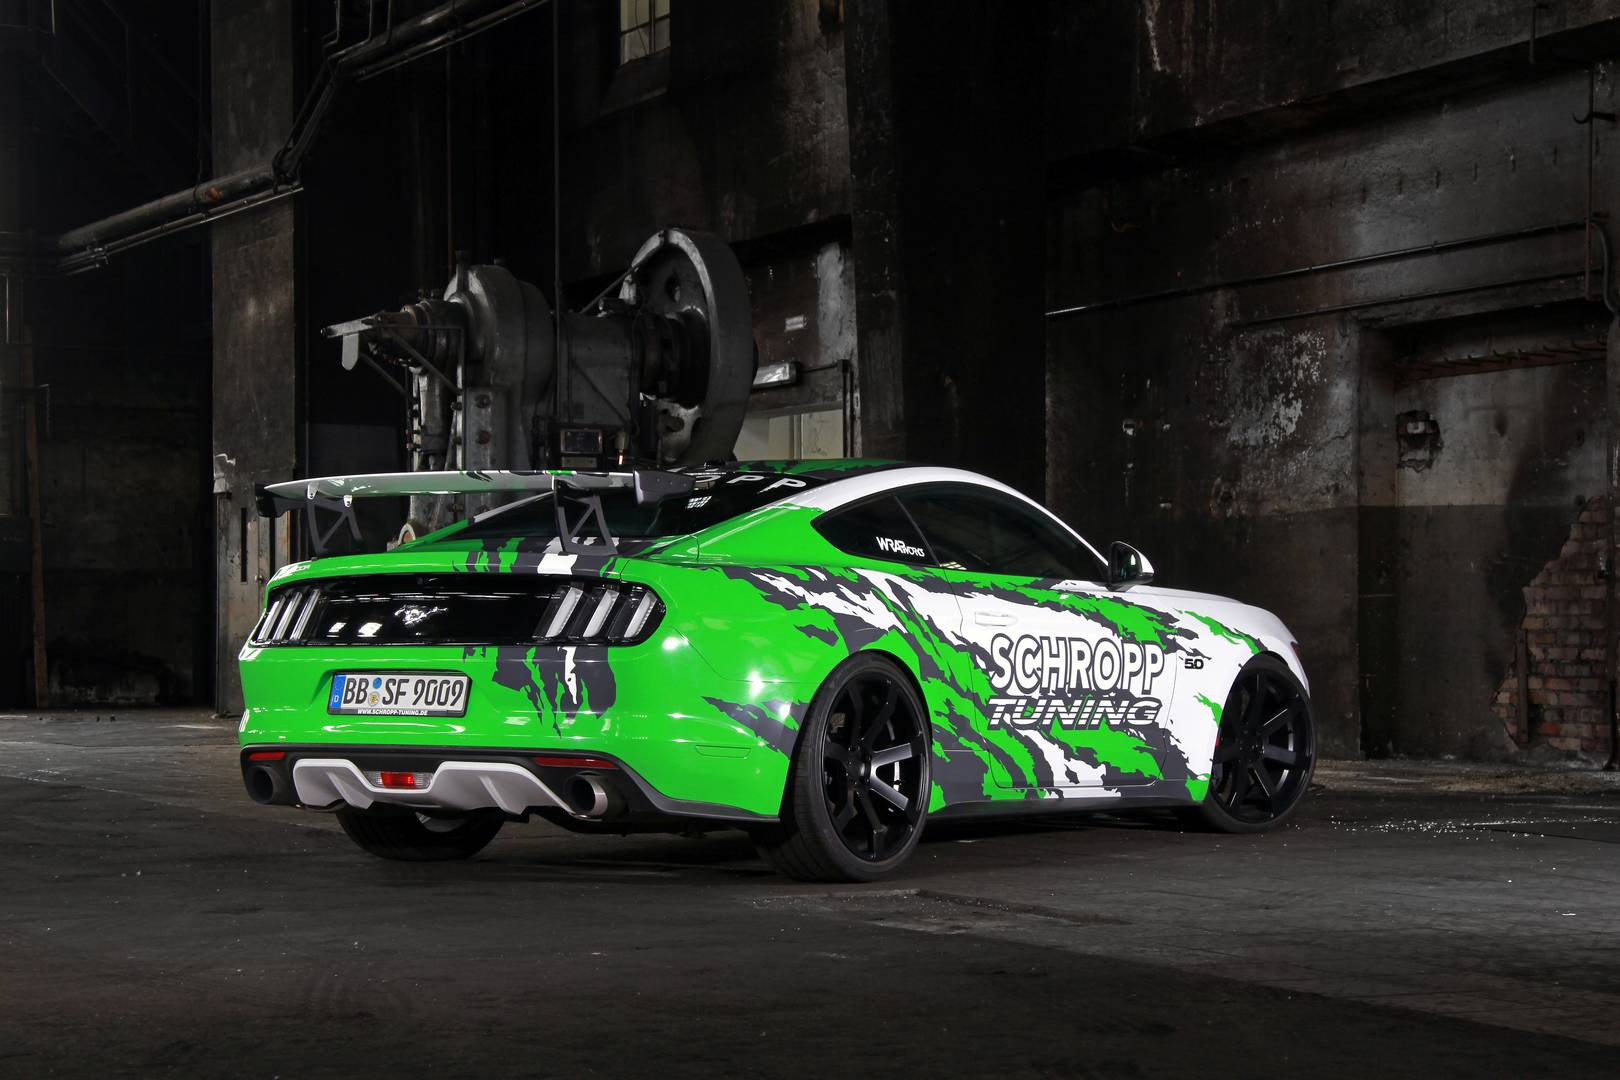 official 807hp ford mustang sf600r by schropp tuning. Black Bedroom Furniture Sets. Home Design Ideas